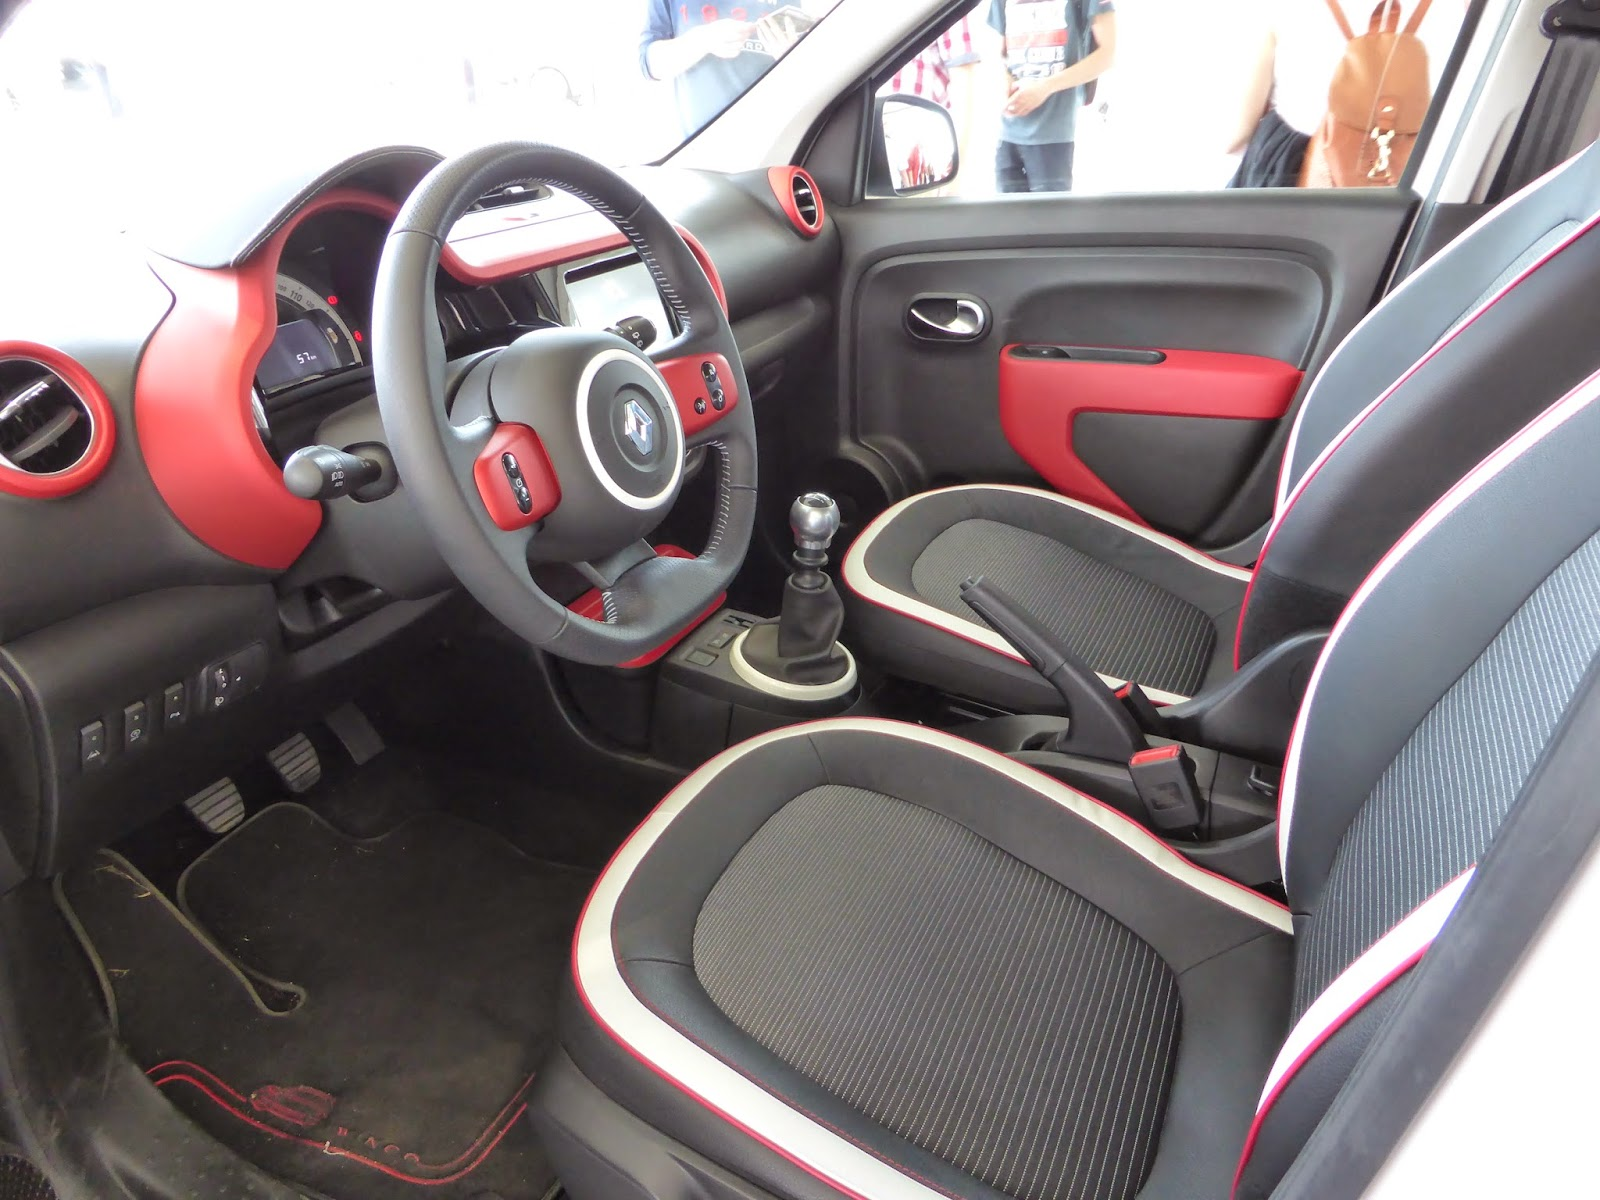 I couldn't find any nasty materials in the new Twingo's interior